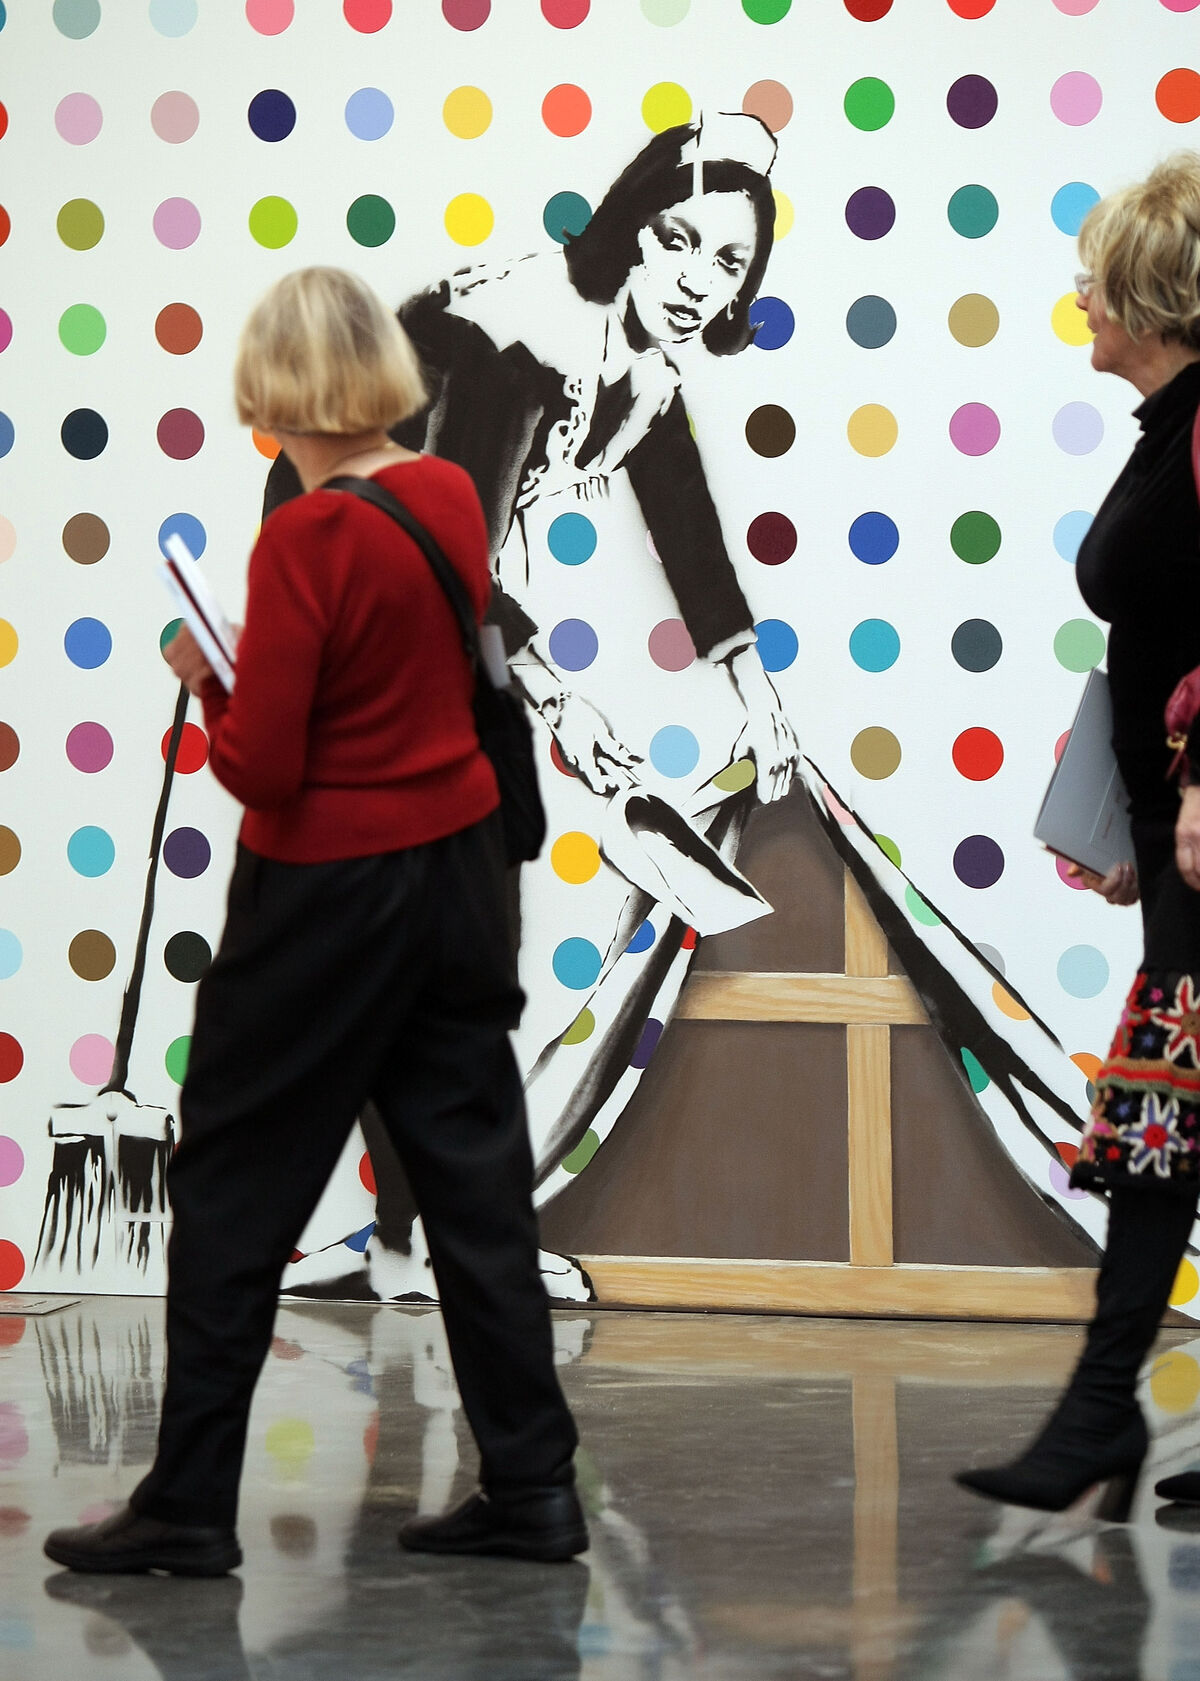 Guests look at a painting by Banksy at the (RED) Auction, Gagosian Gallery, 2008. Photo by Scott Gries via Getty Images.